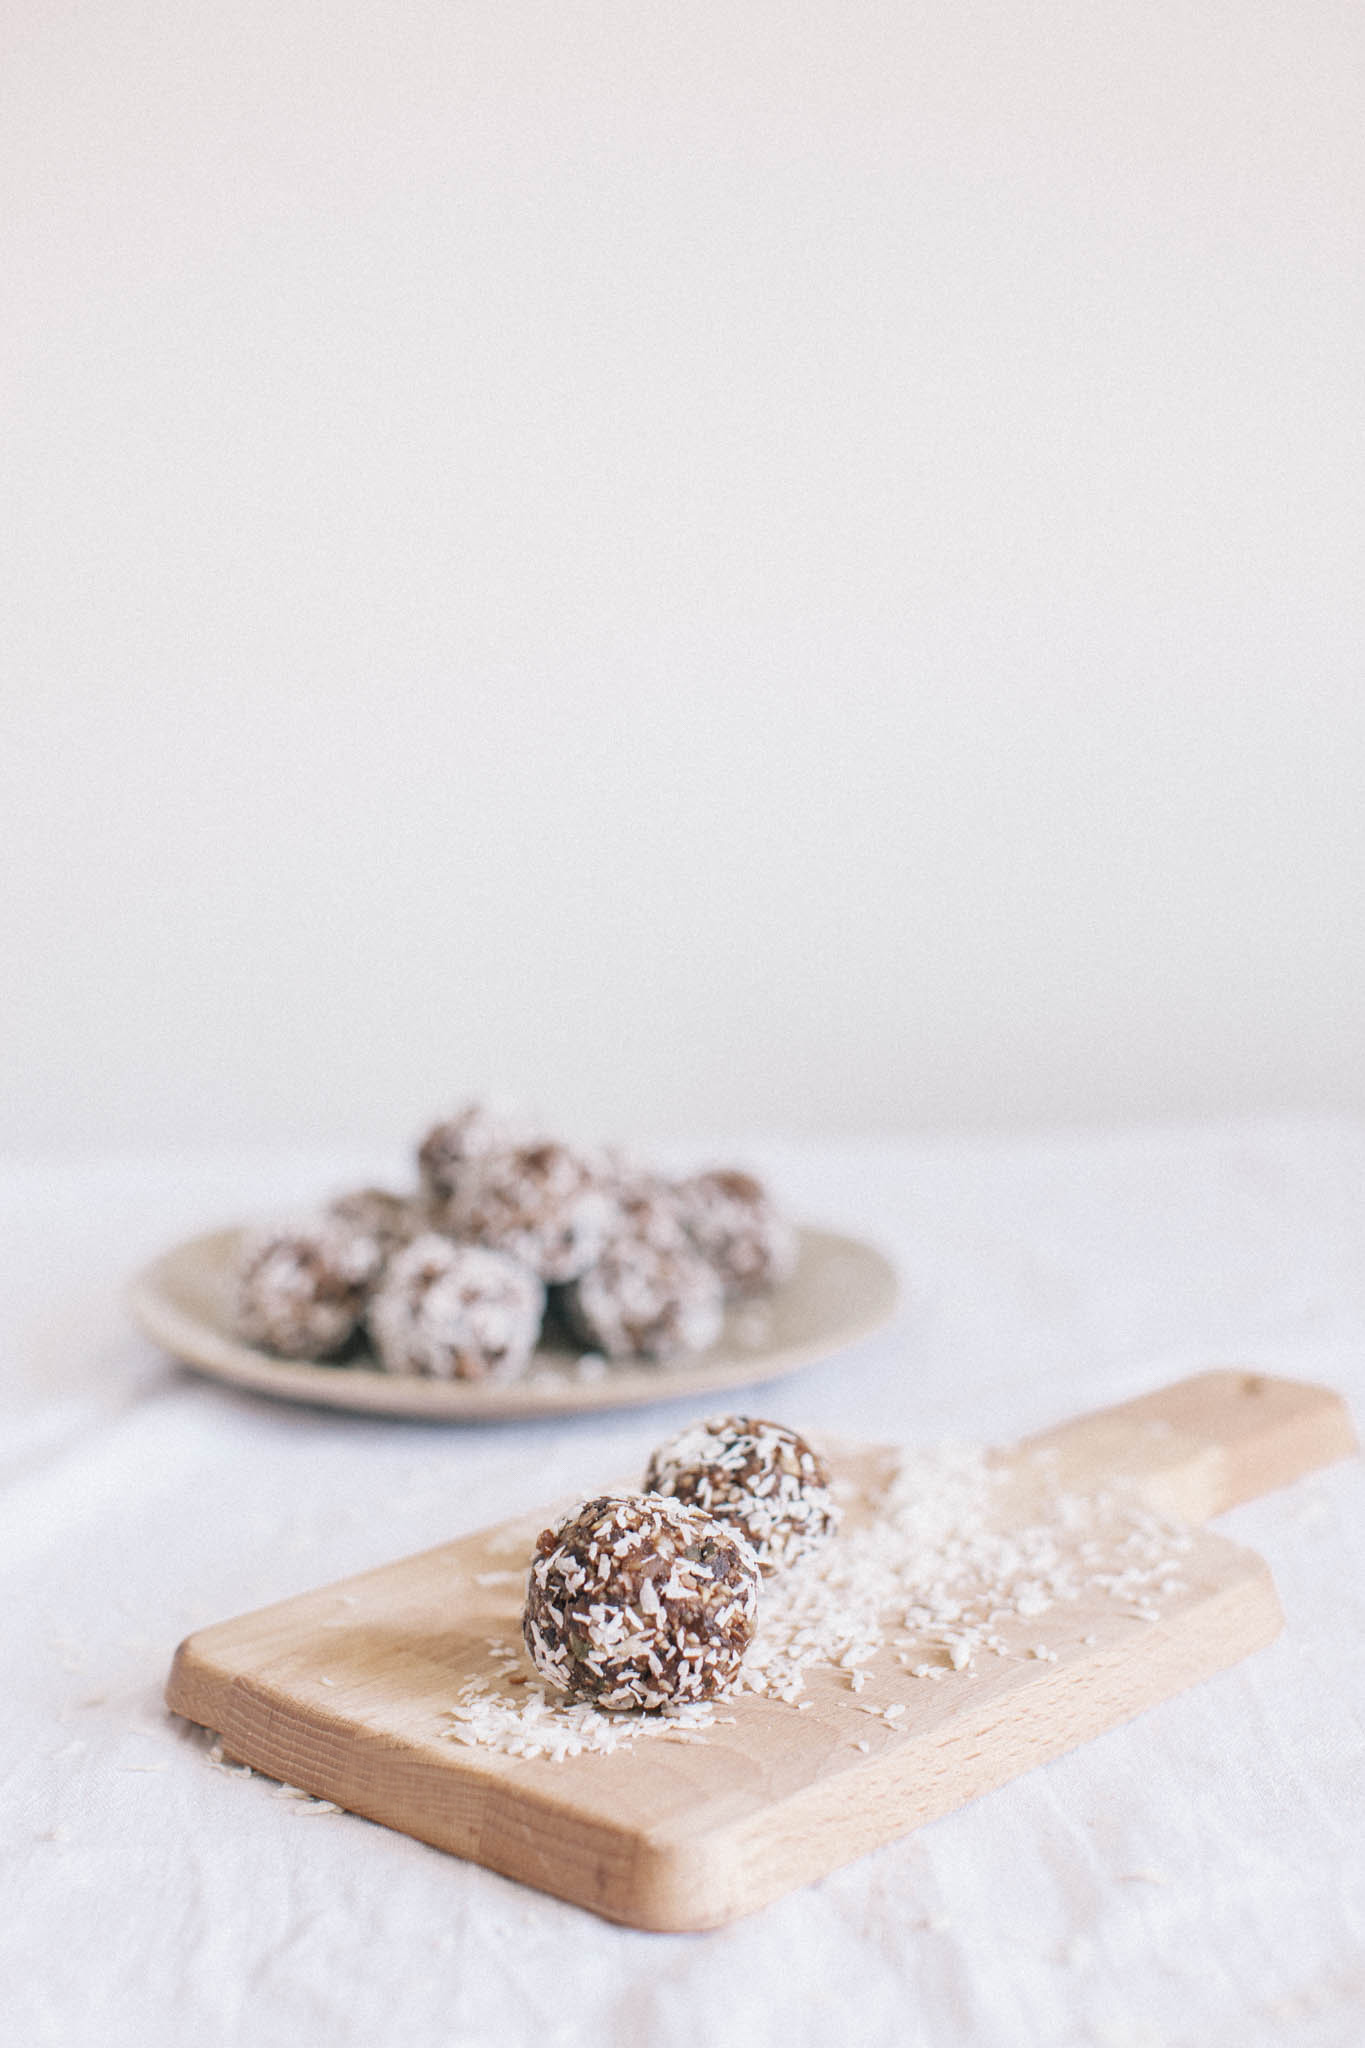 Quick and easy lemon energy nut and seed ball recipe. A quick and easy snack which is good to your blood sugar and will fend off 4pm slumps. Retreat // A food and lifestyle blog for busy people.